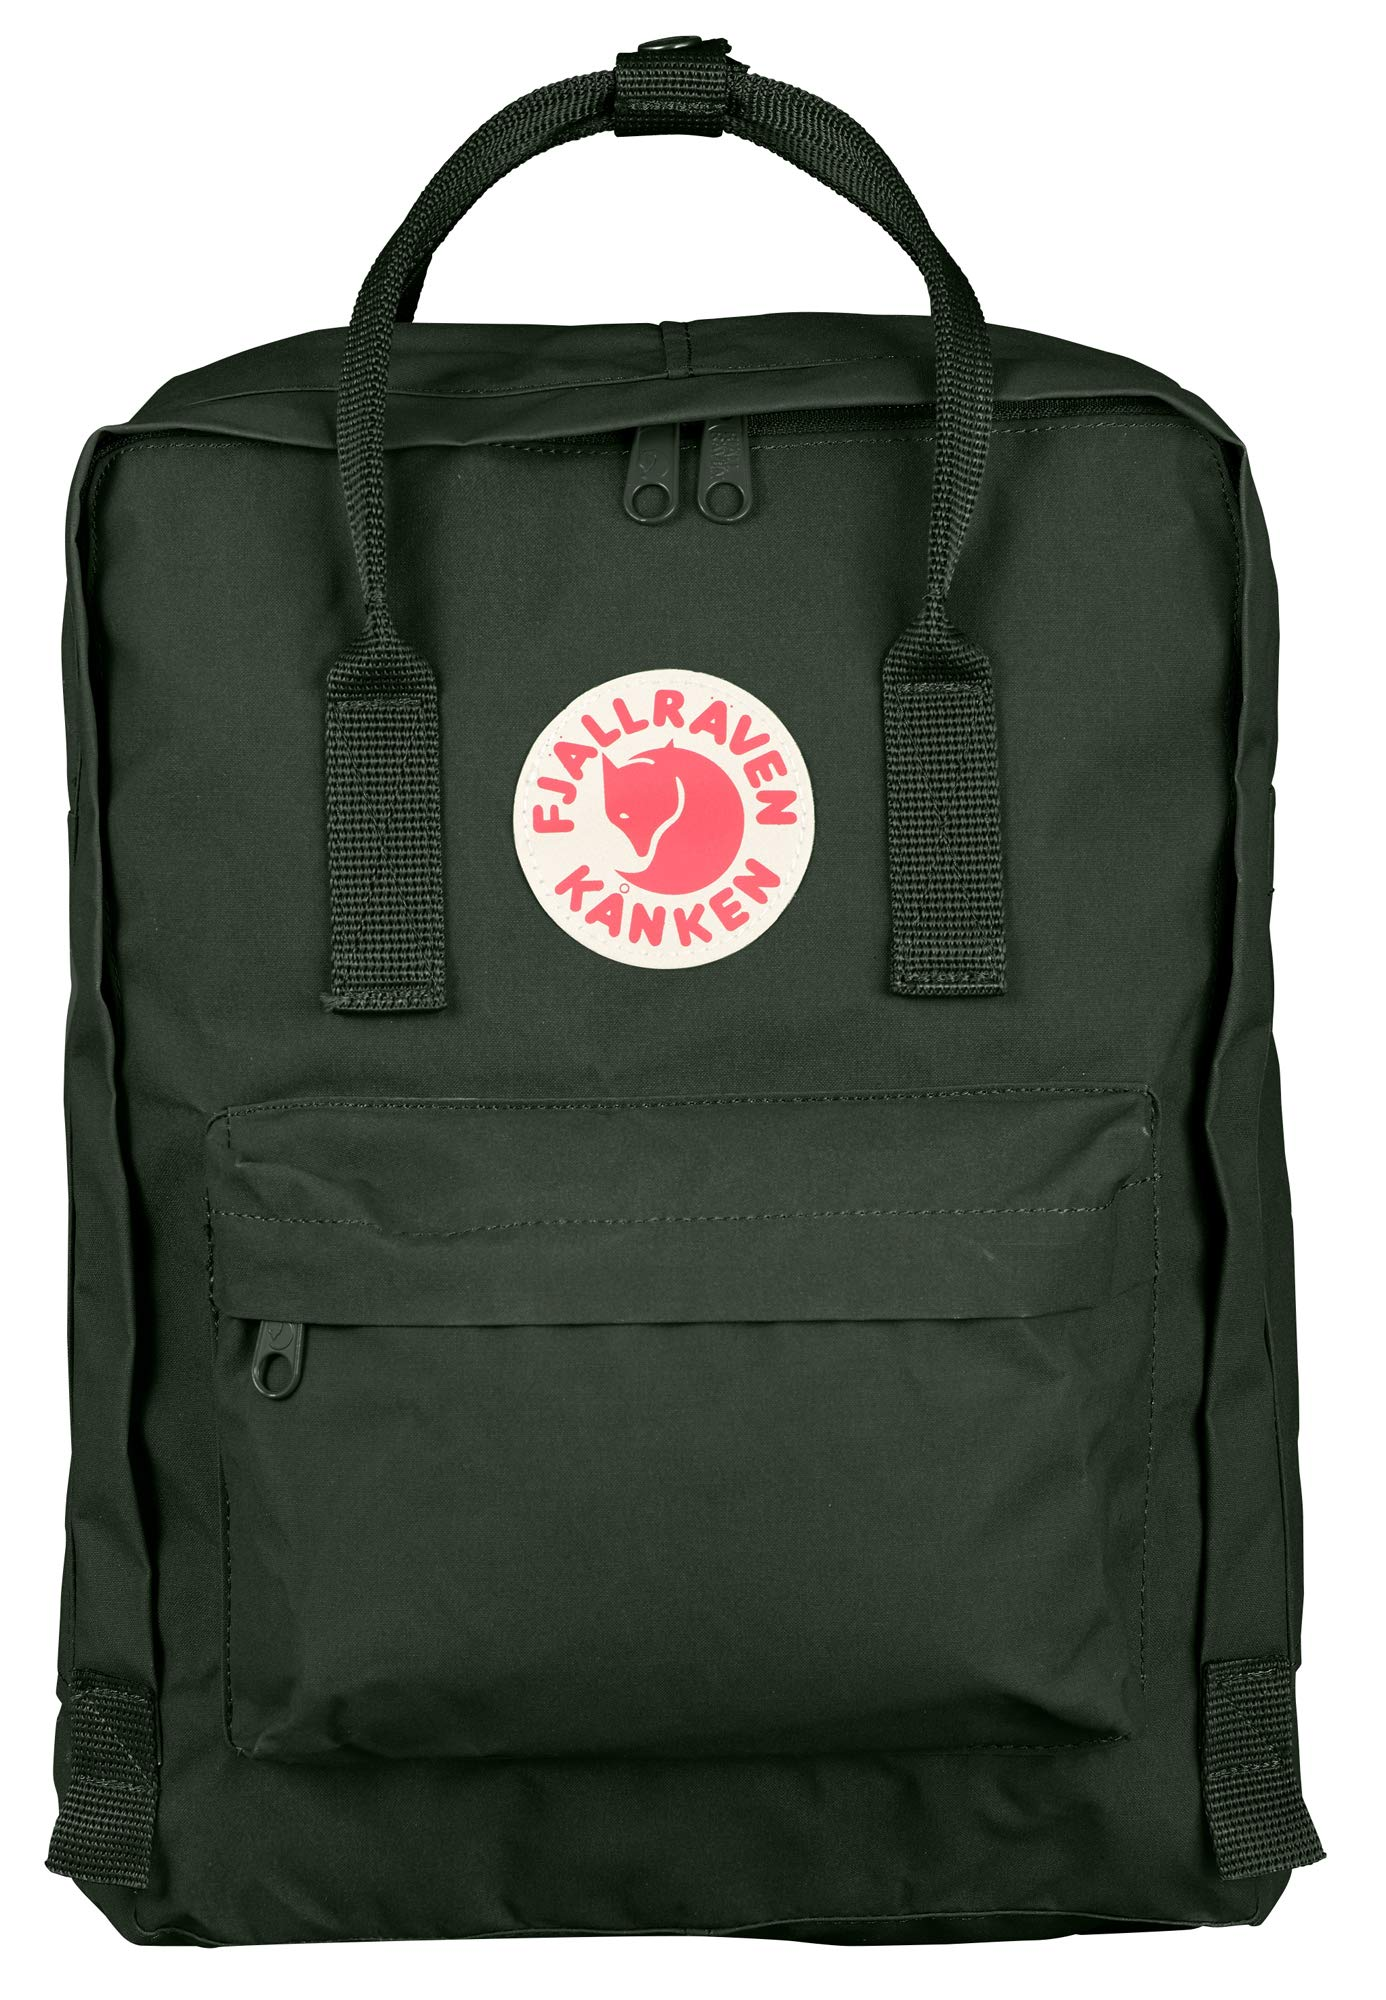 Fjallraven - Kanken Classic Backpack for Everyday, Deep Forest by Fjallraven (Image #1)